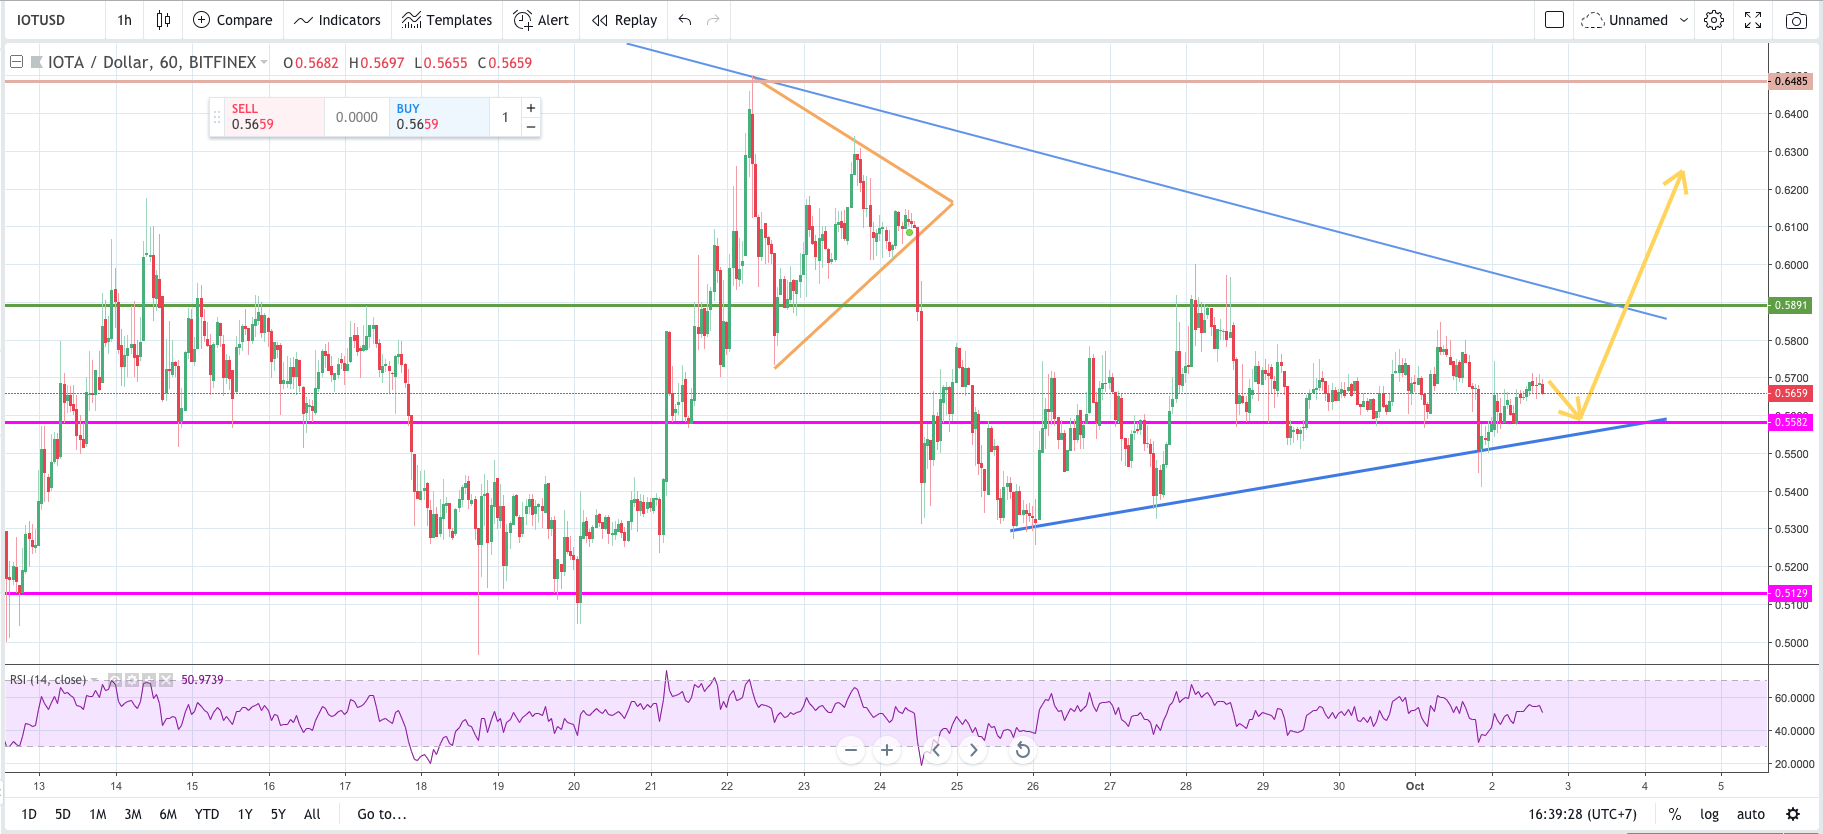 iota, iota price forecast, iota price analysis, iota bollinger bands, tesla, self-driving